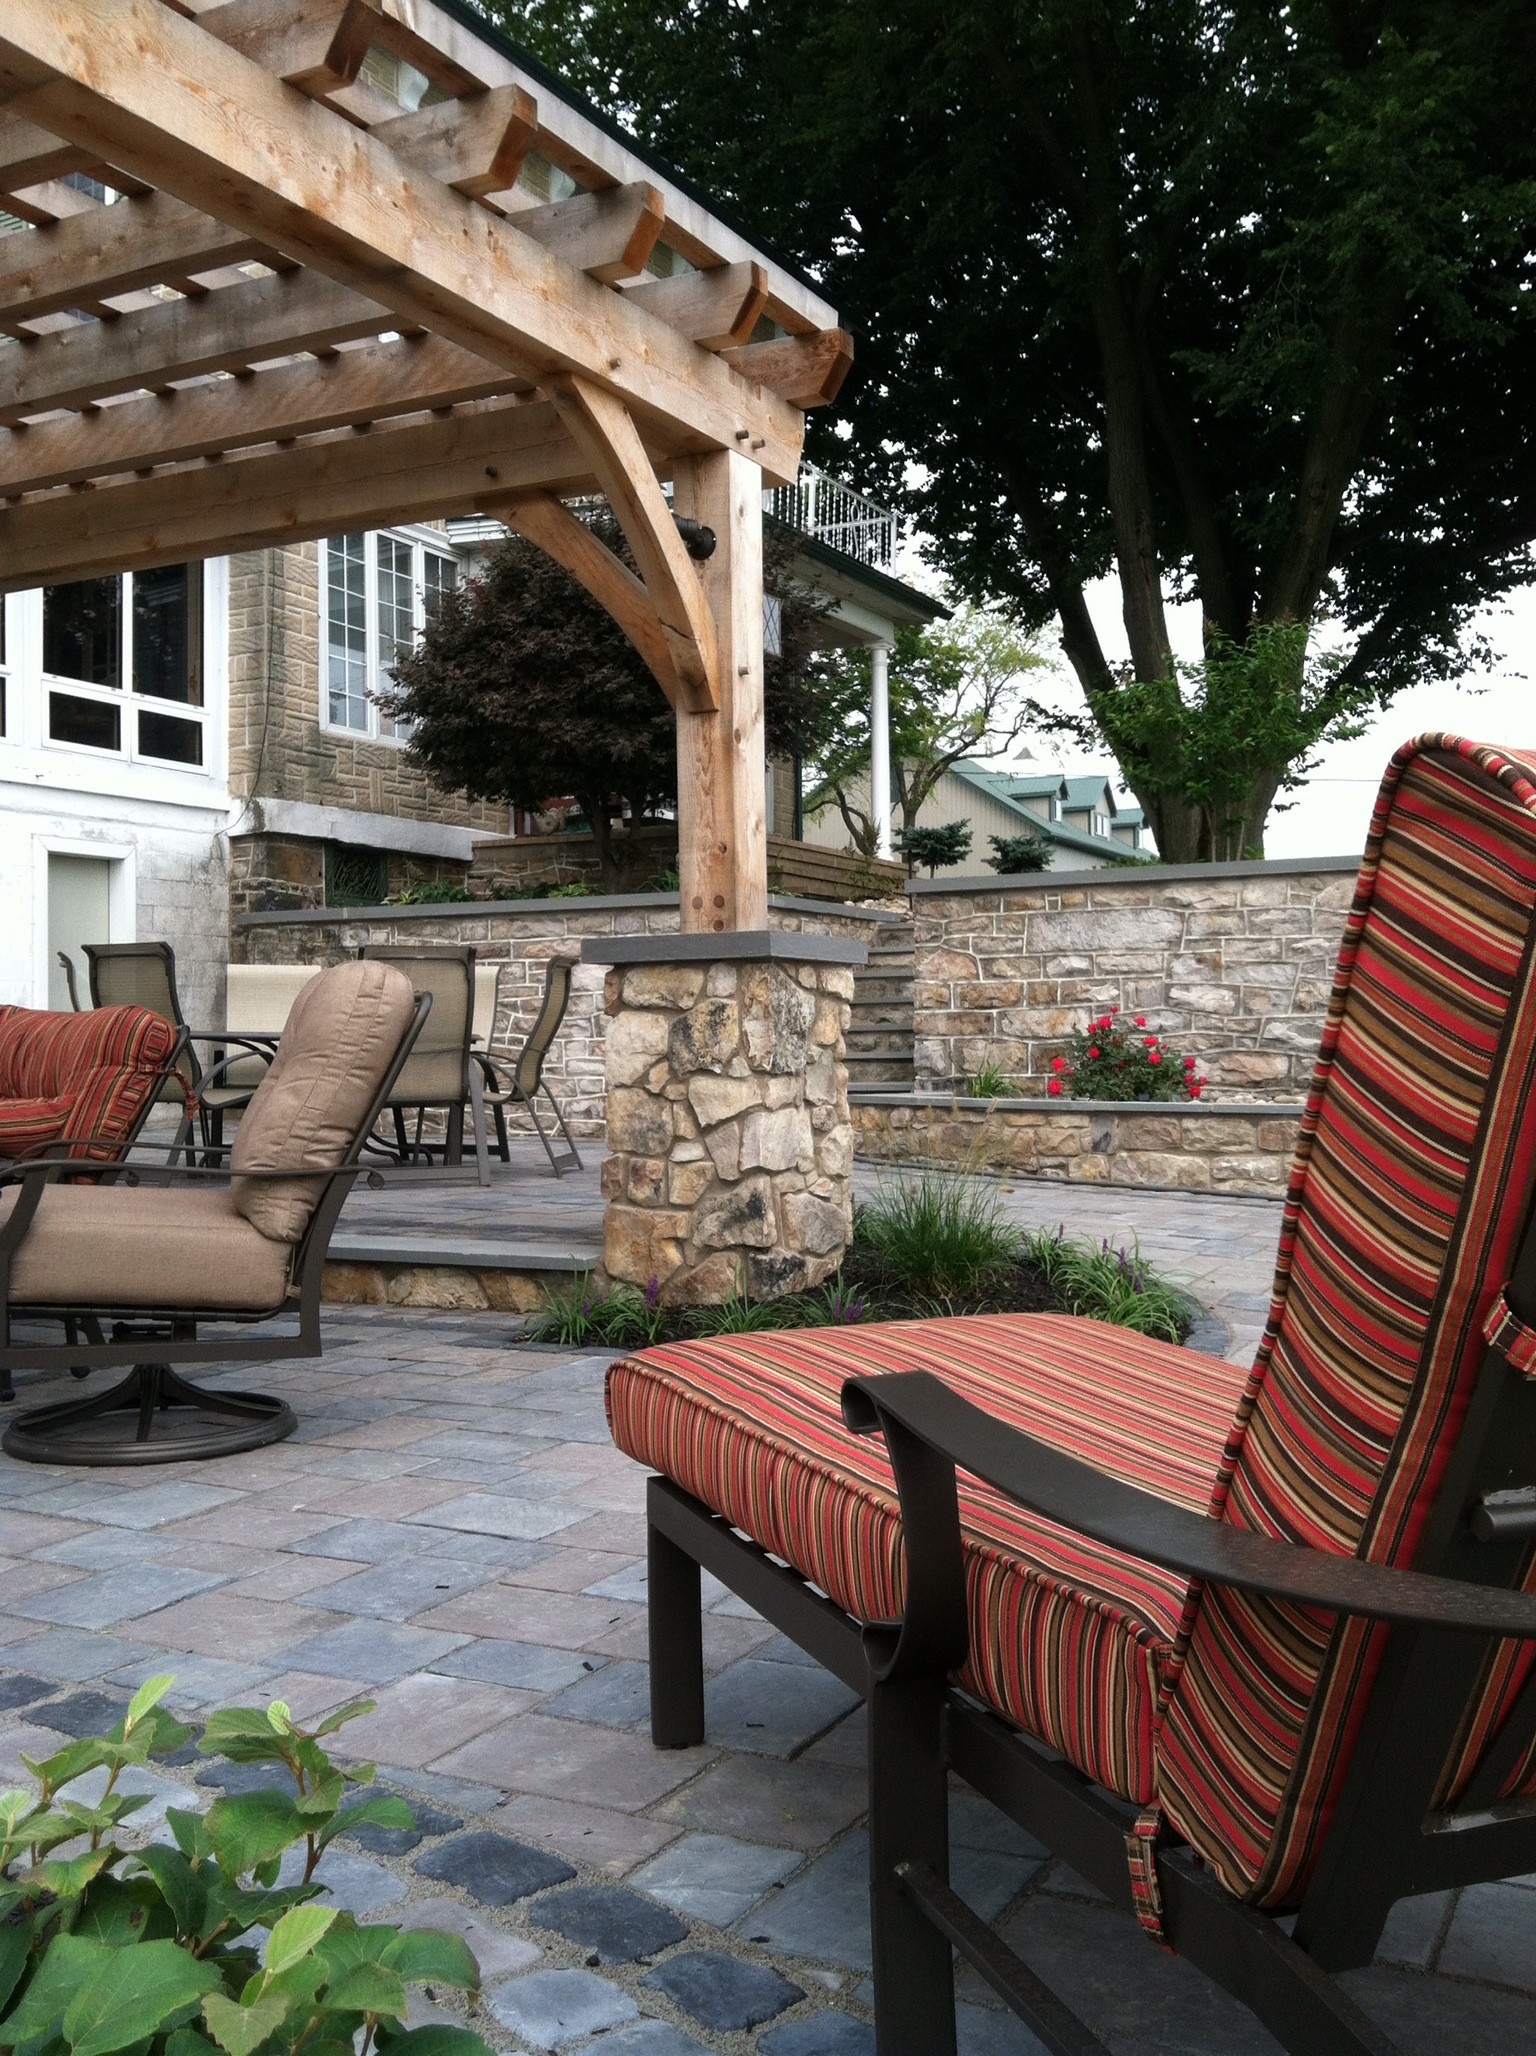 Landscape contractor with top landscape patio ideas in Lebanon, Lebanon County, PA